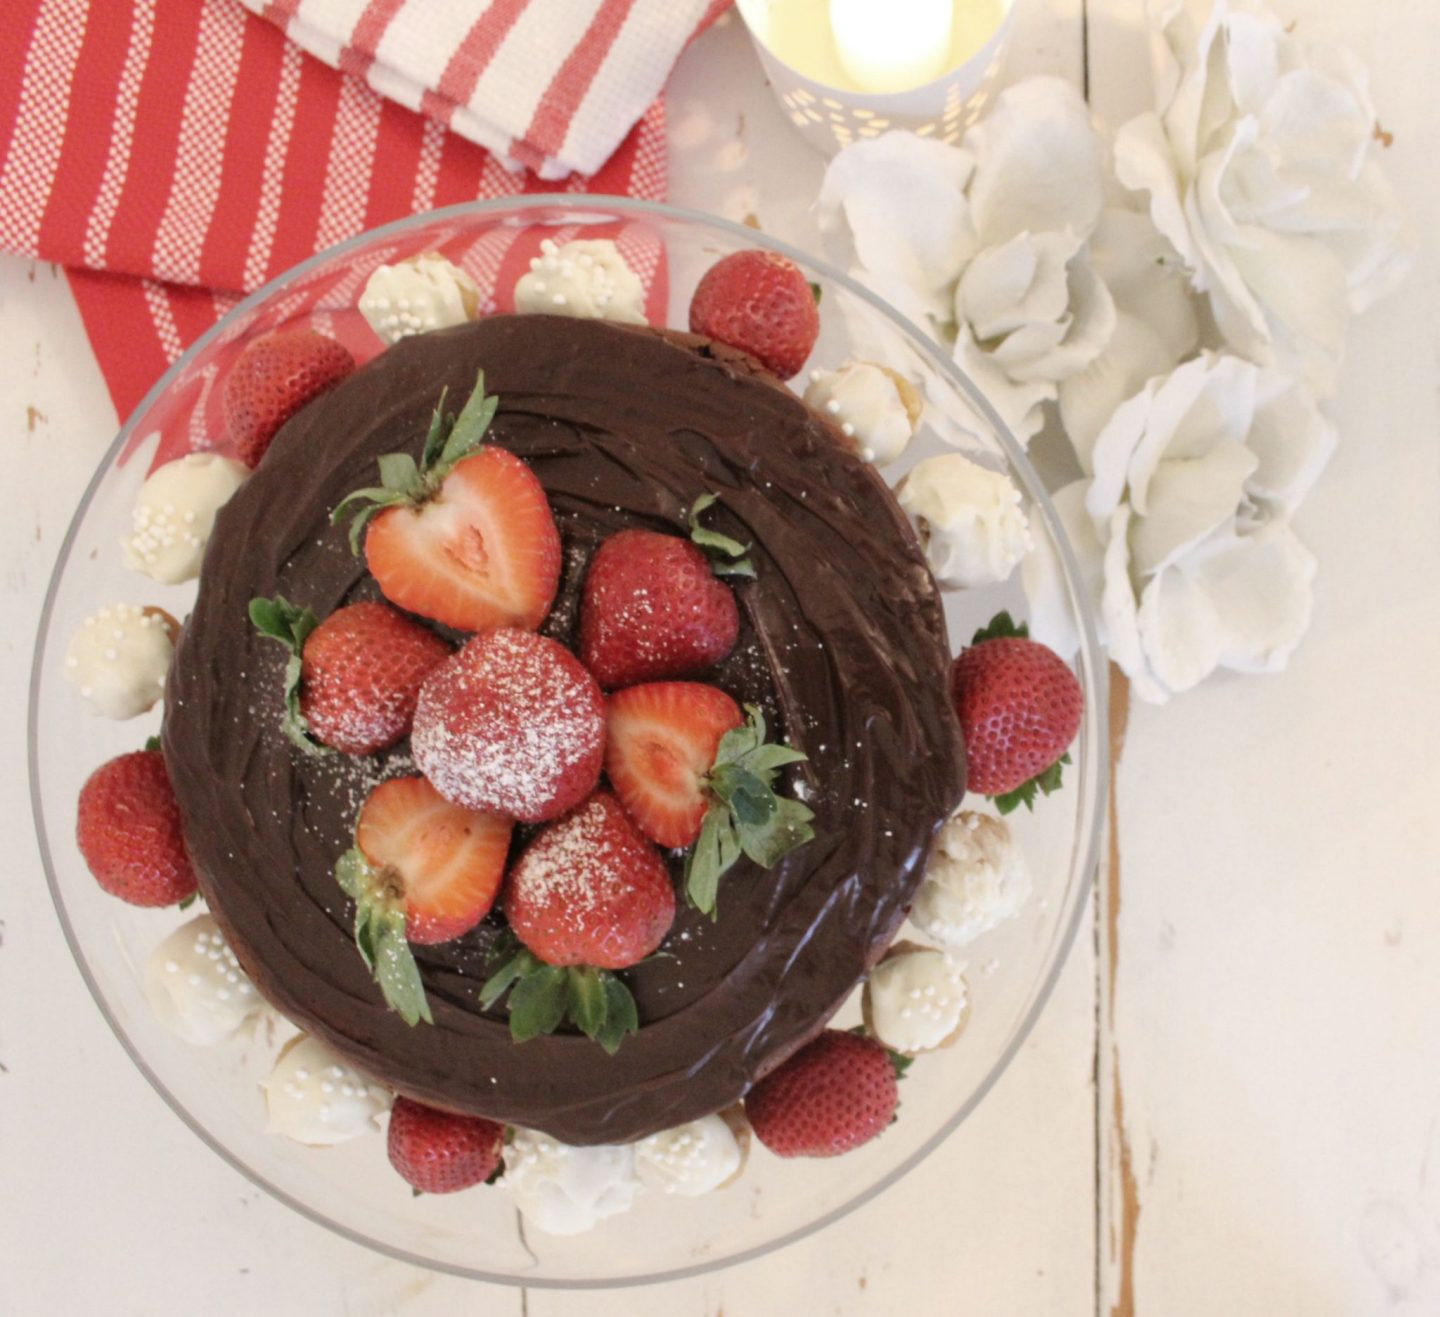 Gluten free chocolate cake topped with strawberries by Hello Lovely Studio